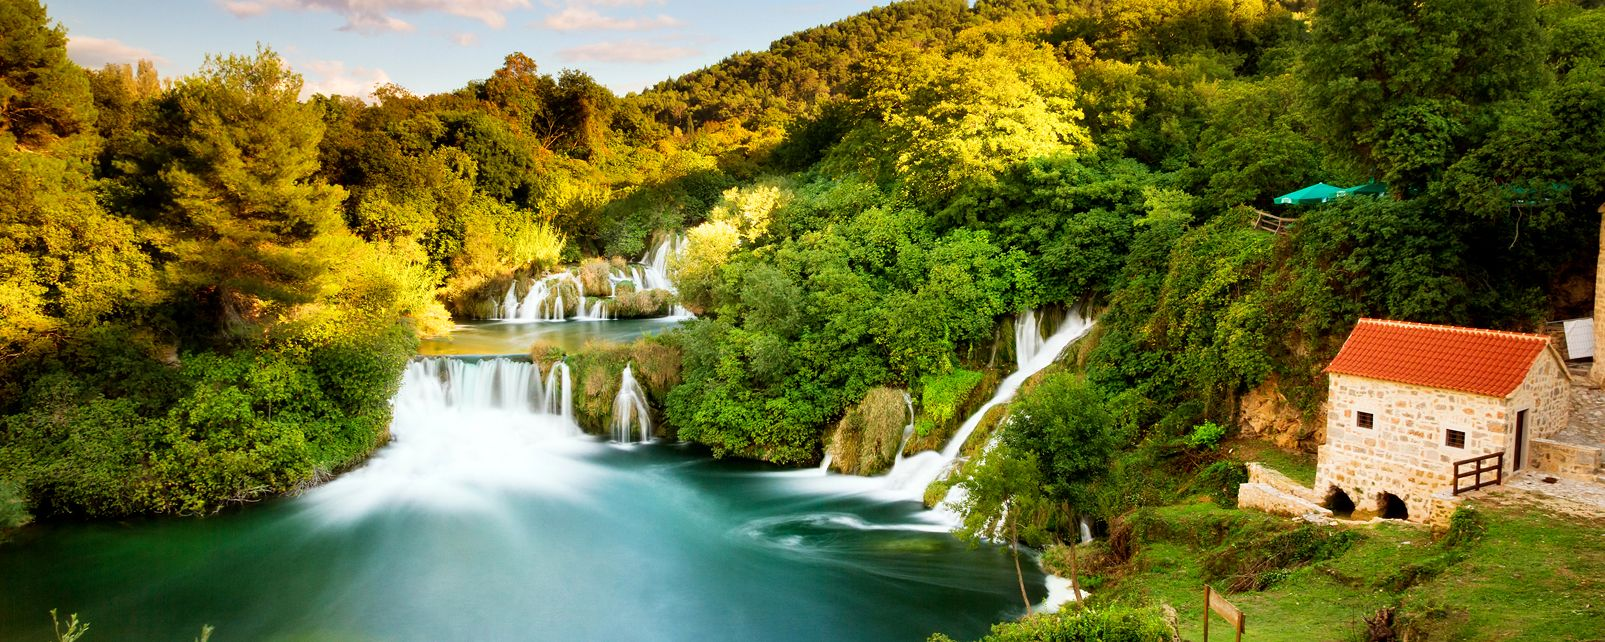 Krka National Park , Krka falls, Krka National Park, Croatia , Croatia